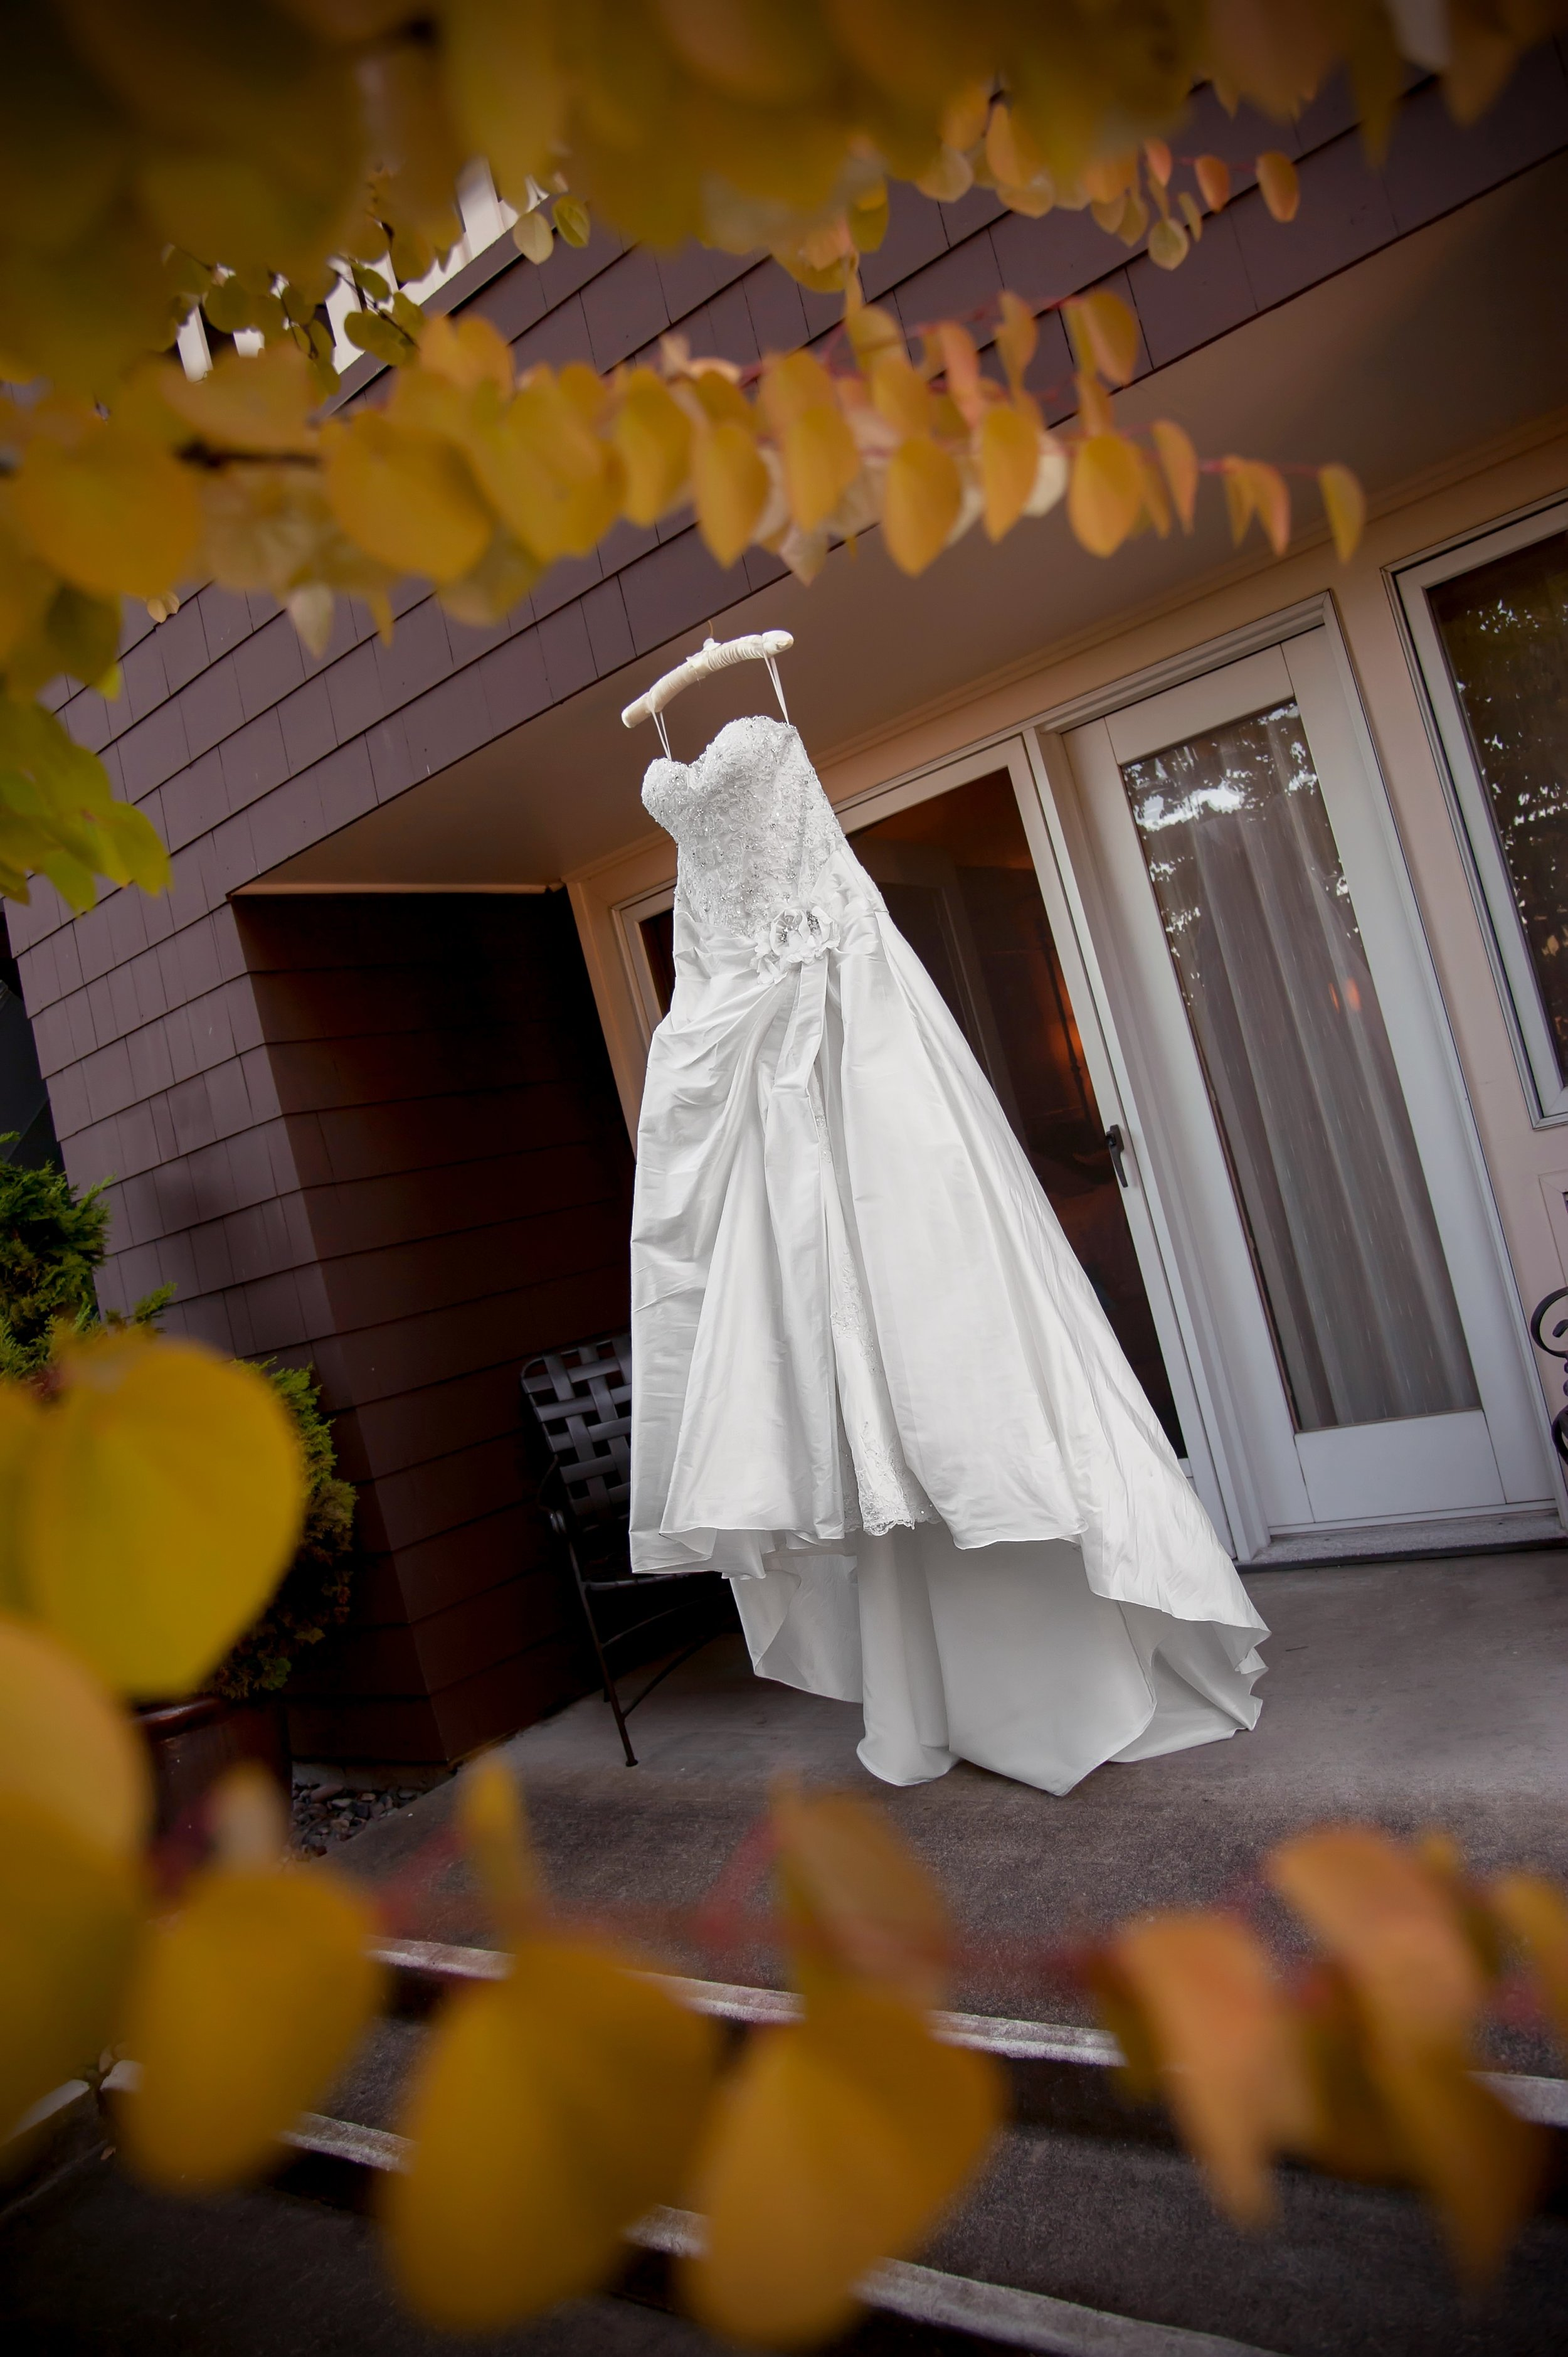 Wedding Gown.jpg